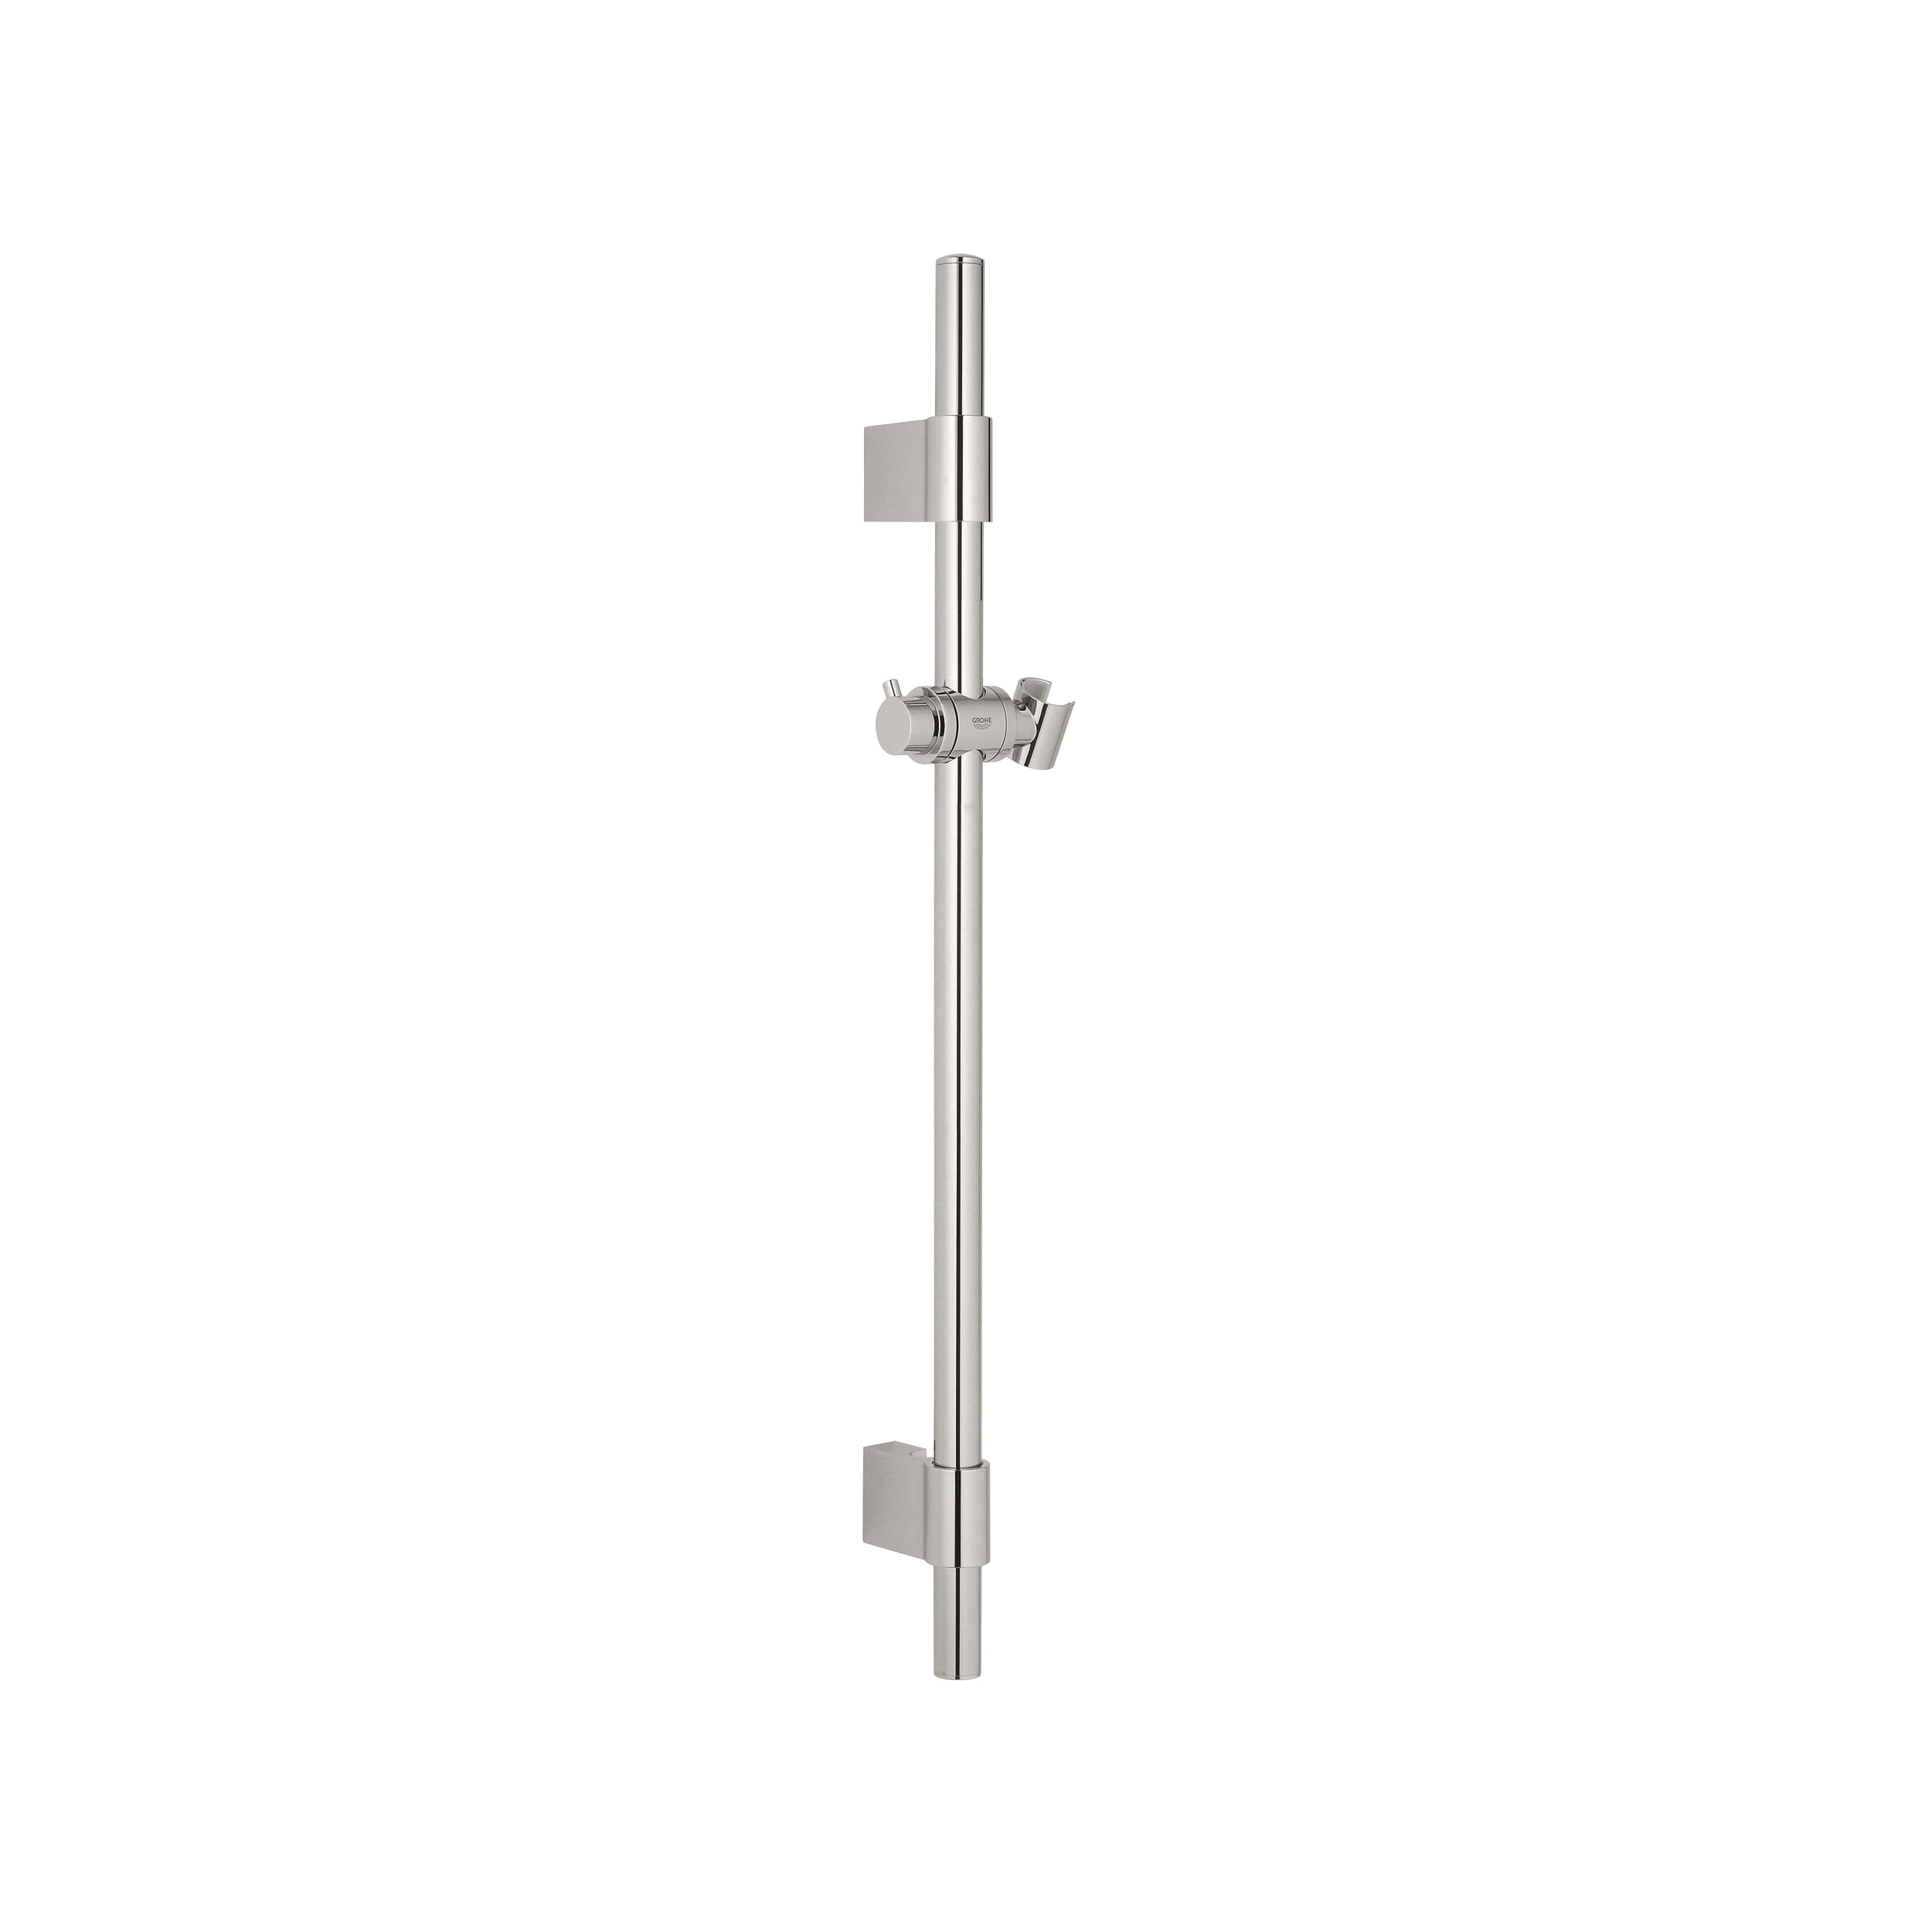 GROHE 28797BE1 Rainshower® Shower Bar With Wall Holder, 24 in, Import